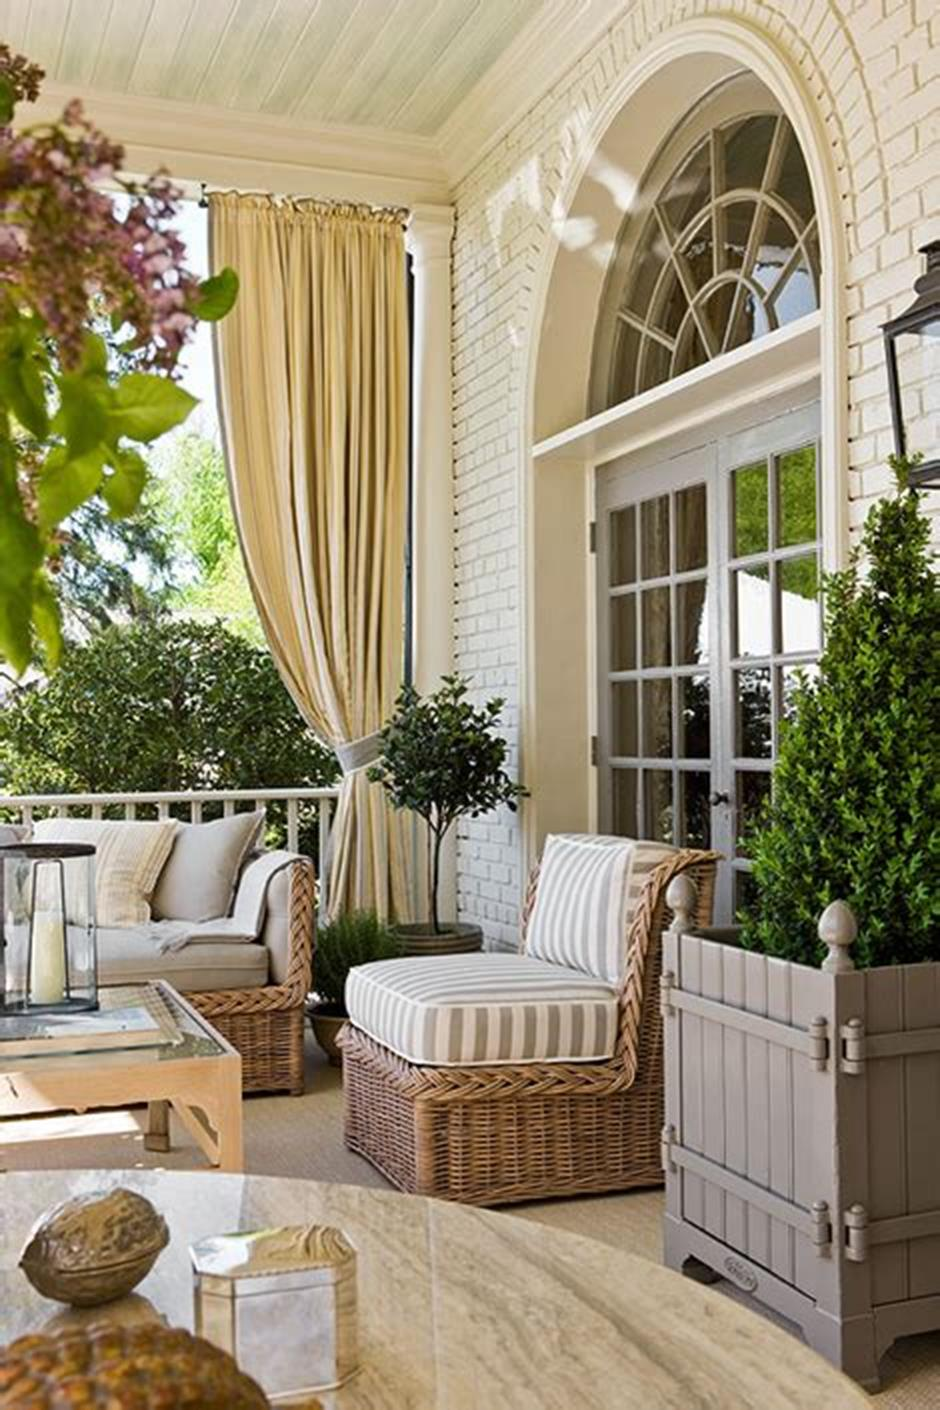 40 Beautiful Spring Front Porch Decorating Ideas You Will Love 10